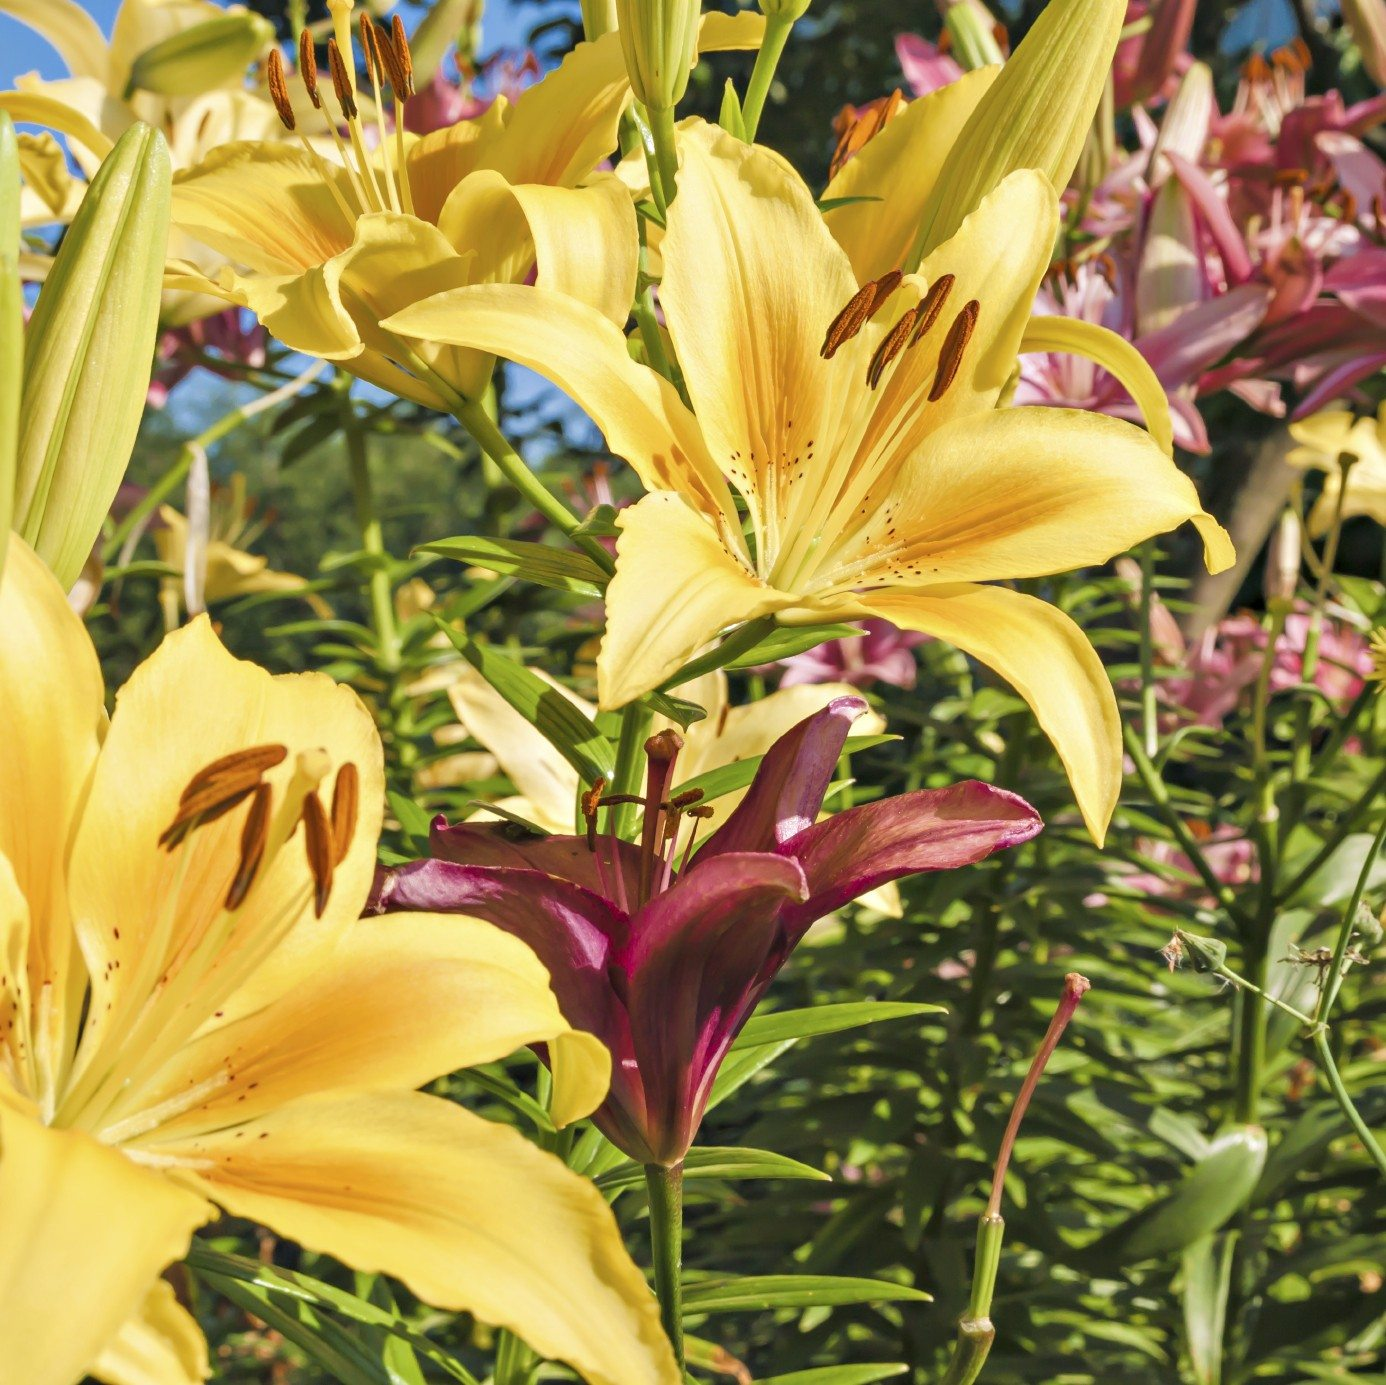 Common lily varieties types of lilies and when they bloom izmirmasajfo